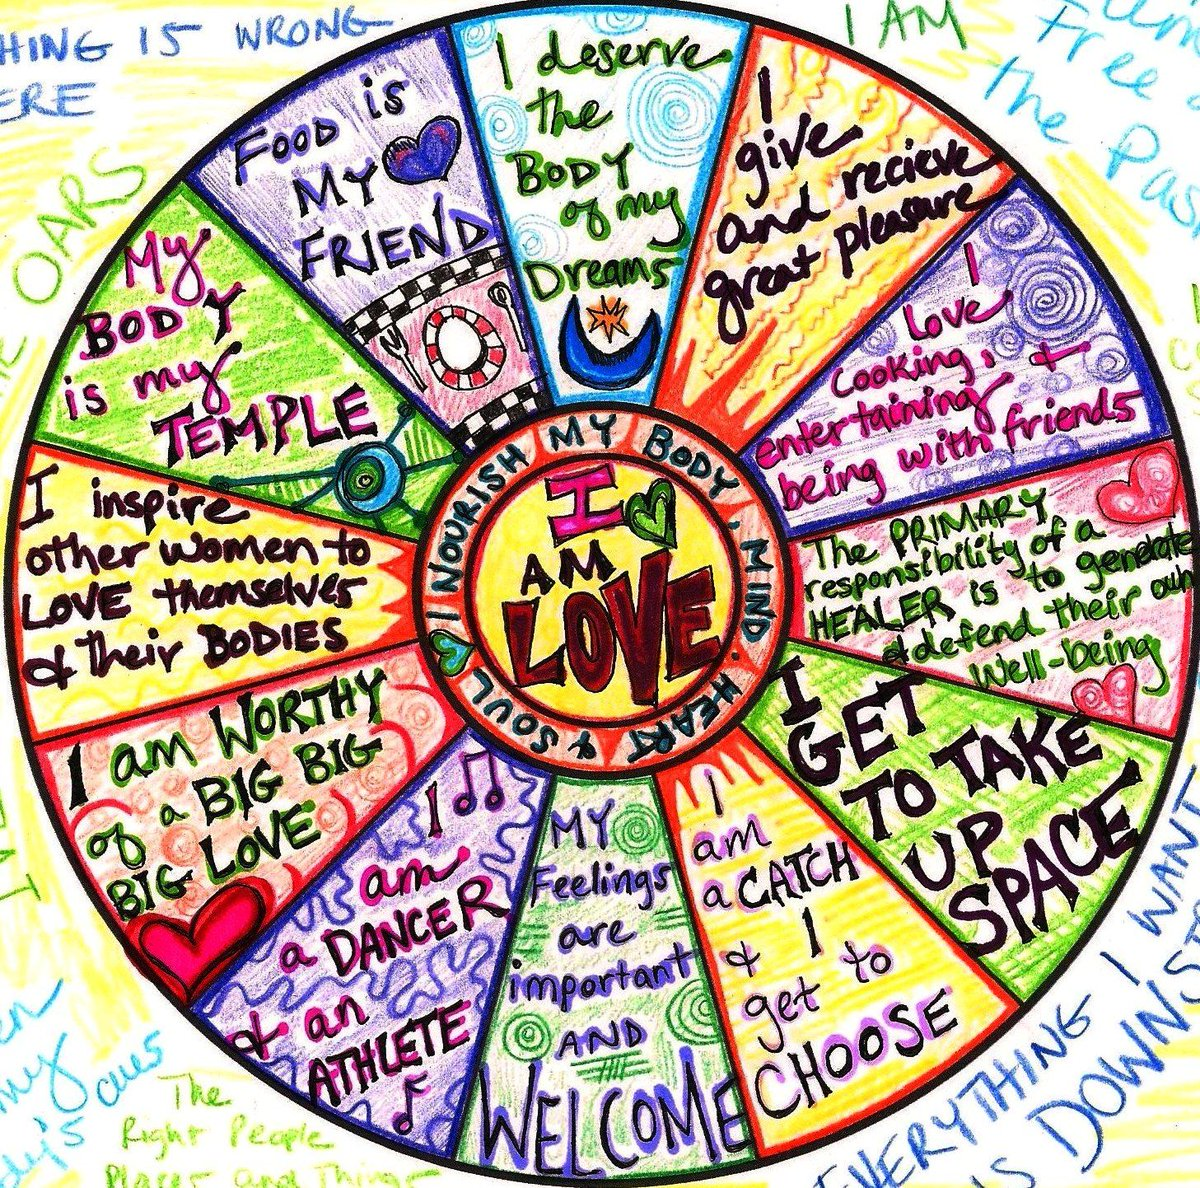 If you like, add this focus wheel to your dream board. Or, just pin it to your fridge or front door to keep you connected with its truth. pic.twitter.com/qUkWsULQlv